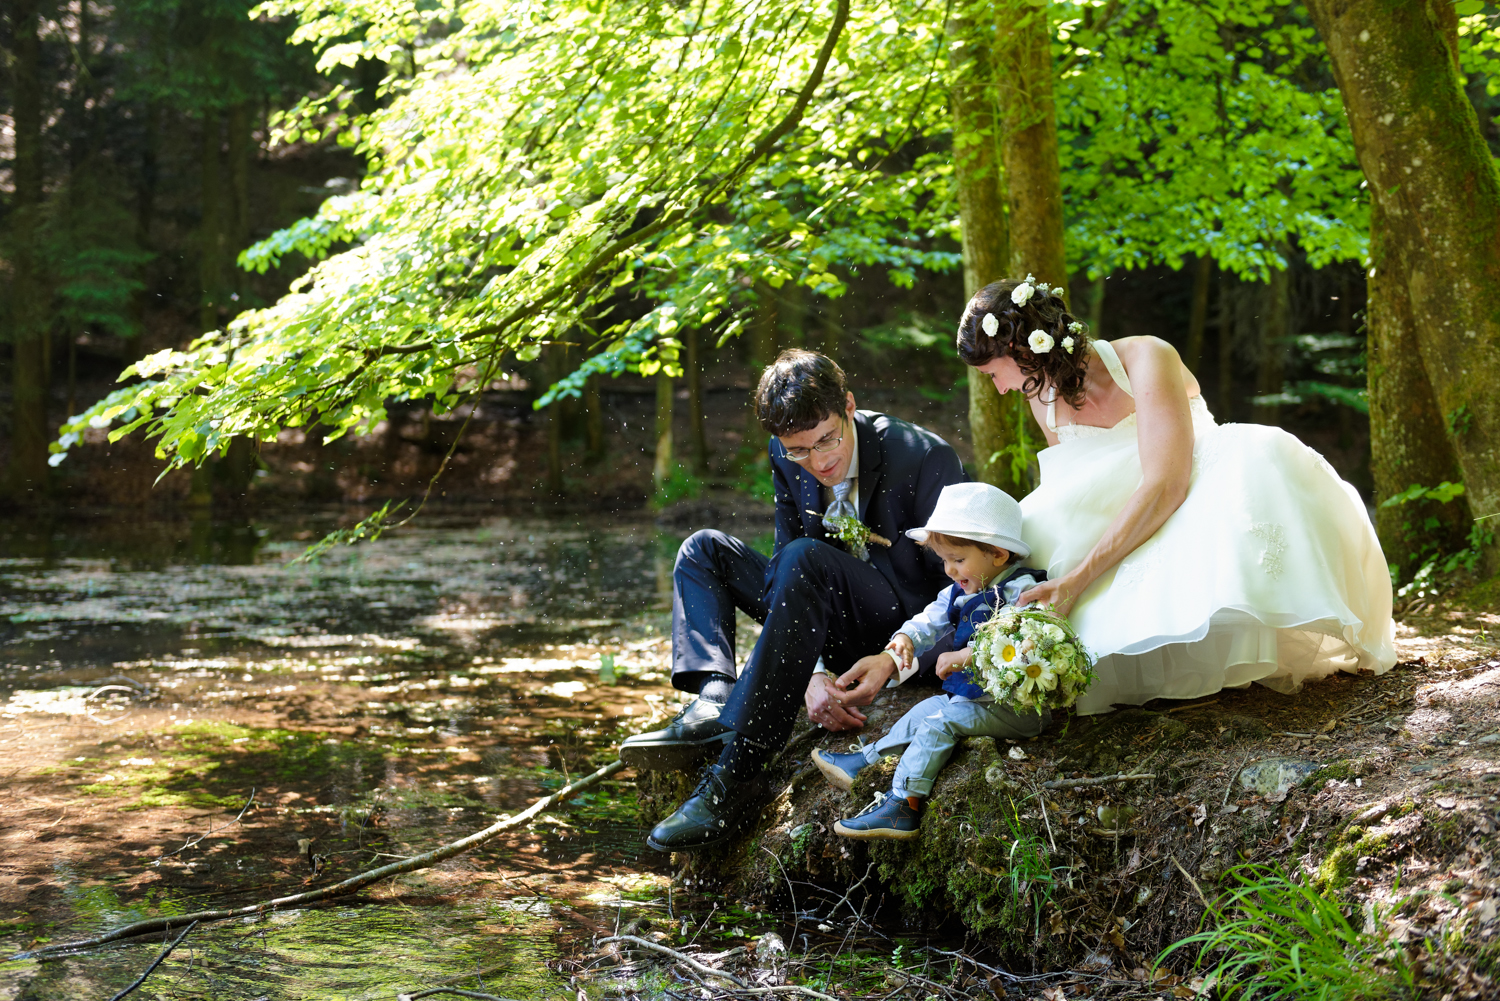 Famiienfotos am Wasser, Kinderfotografie, Familienshooting in der Natur